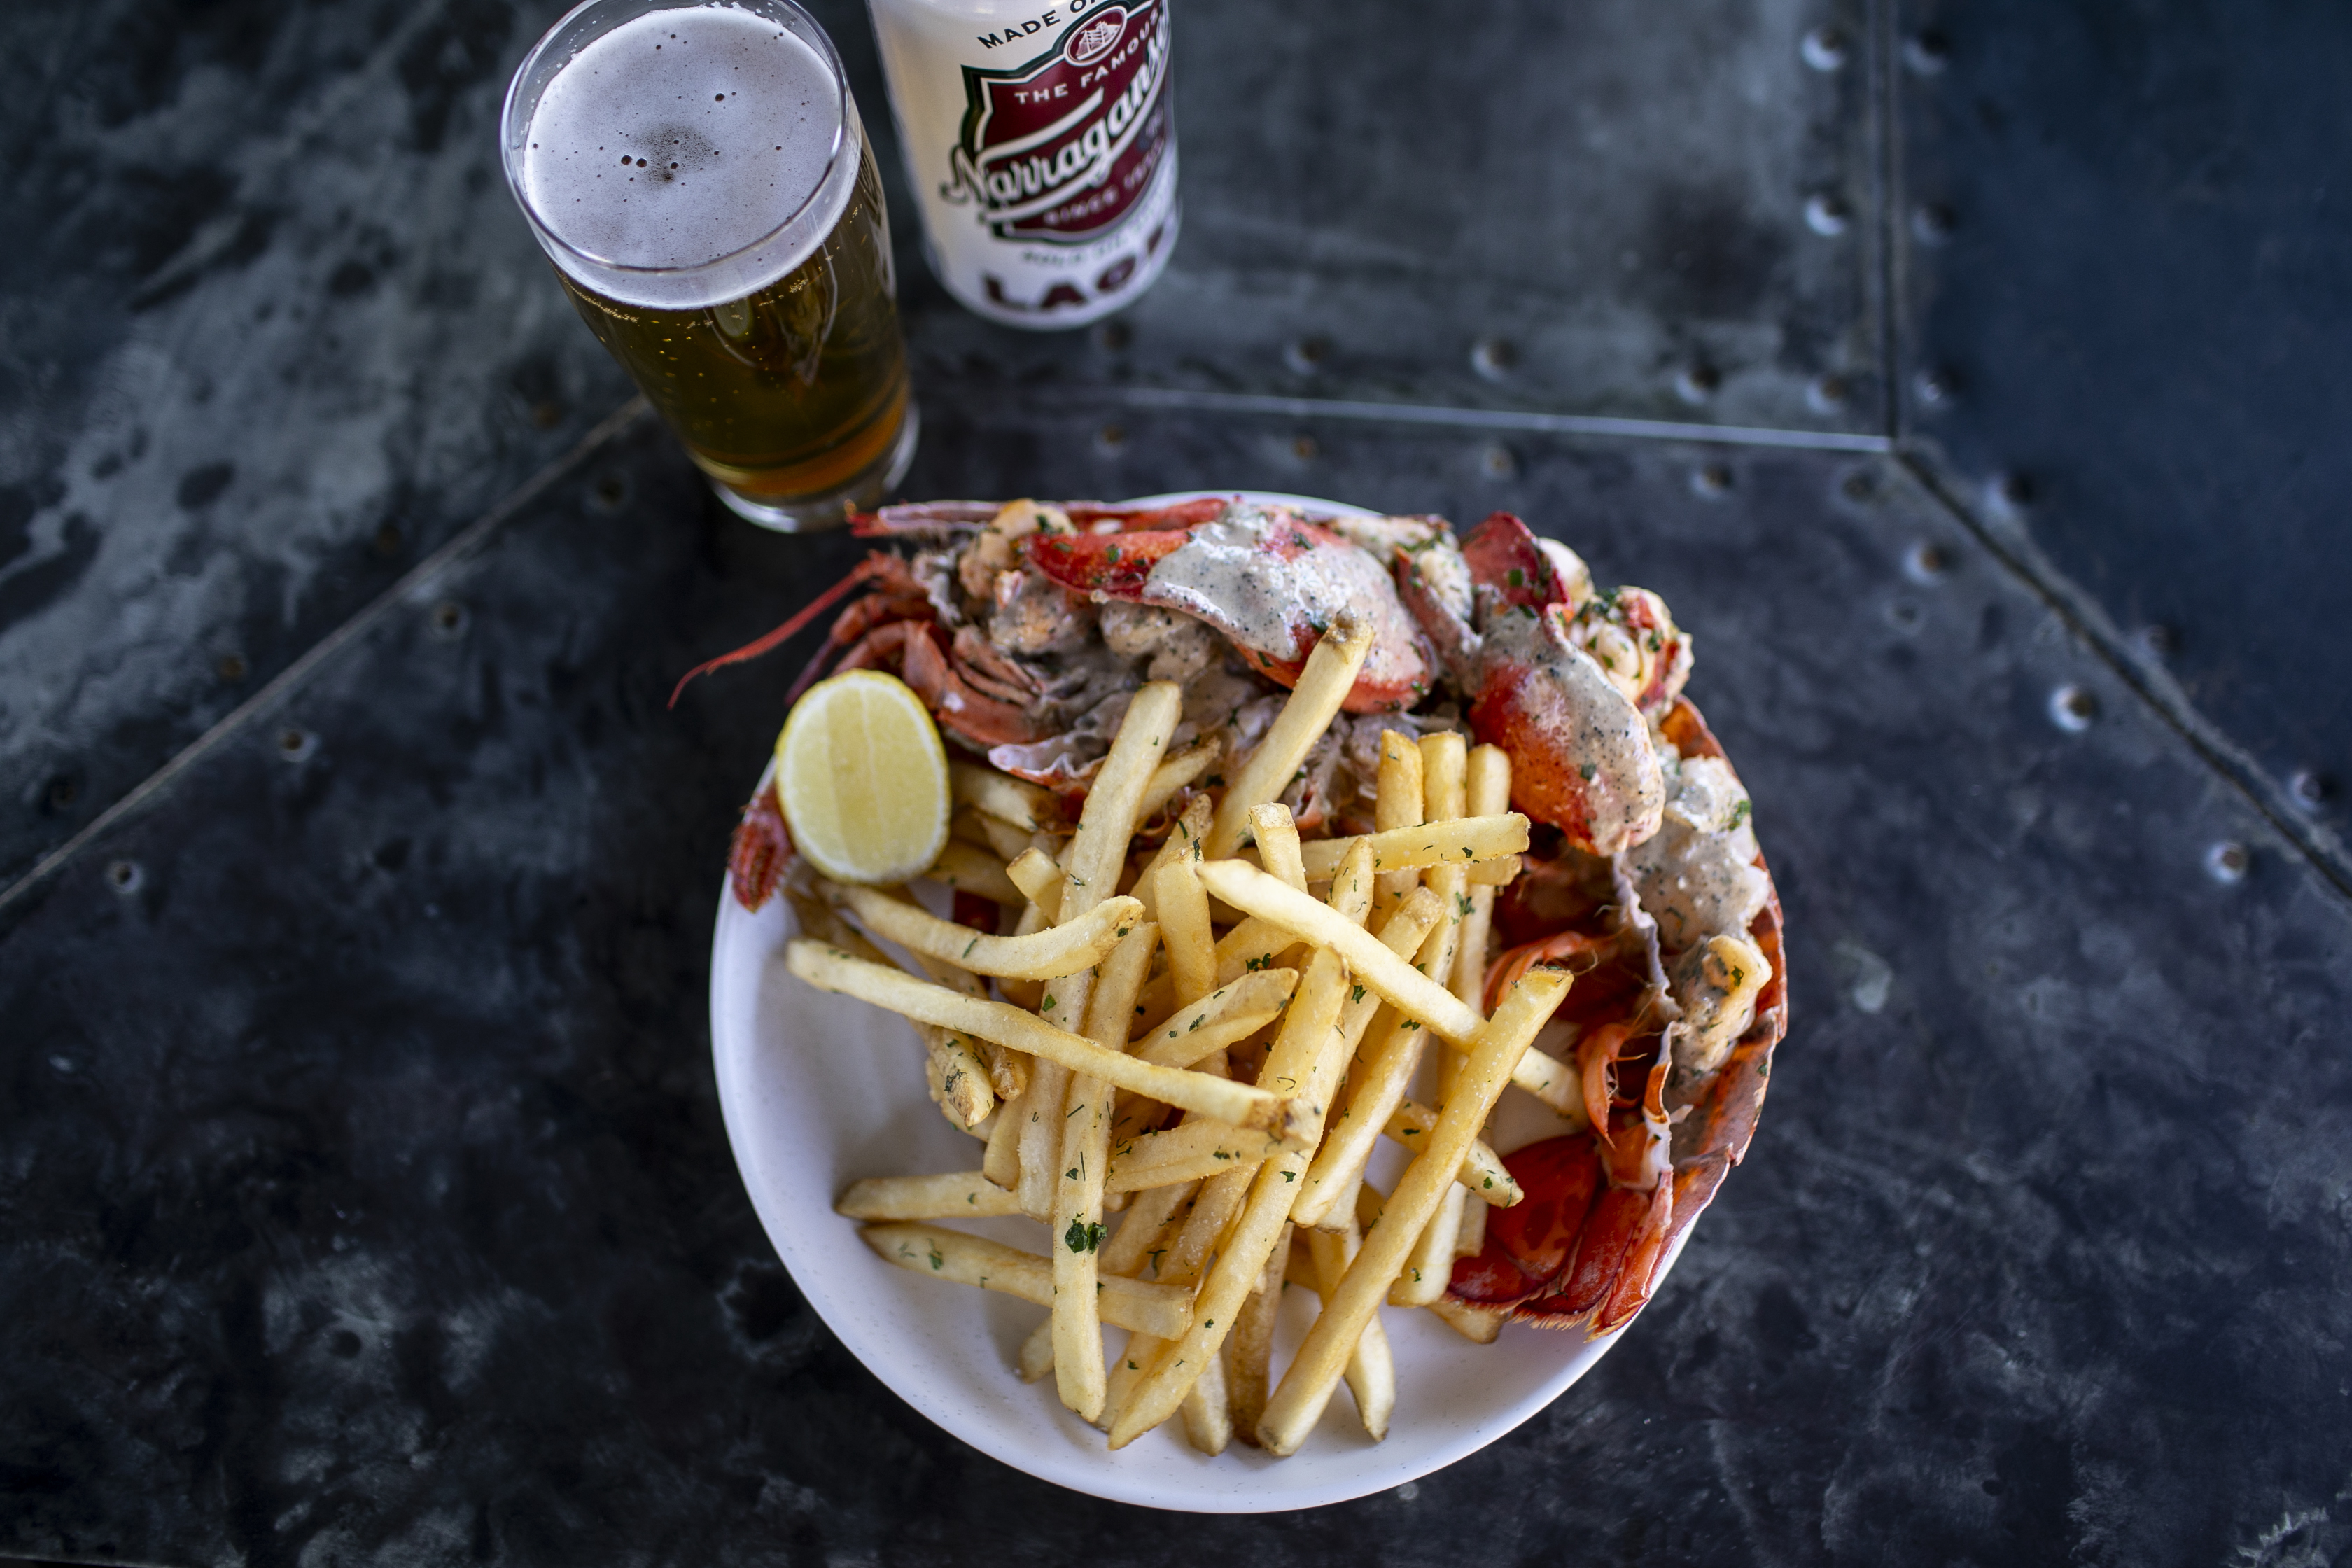 A plate of boiled lobster and fries with a beer